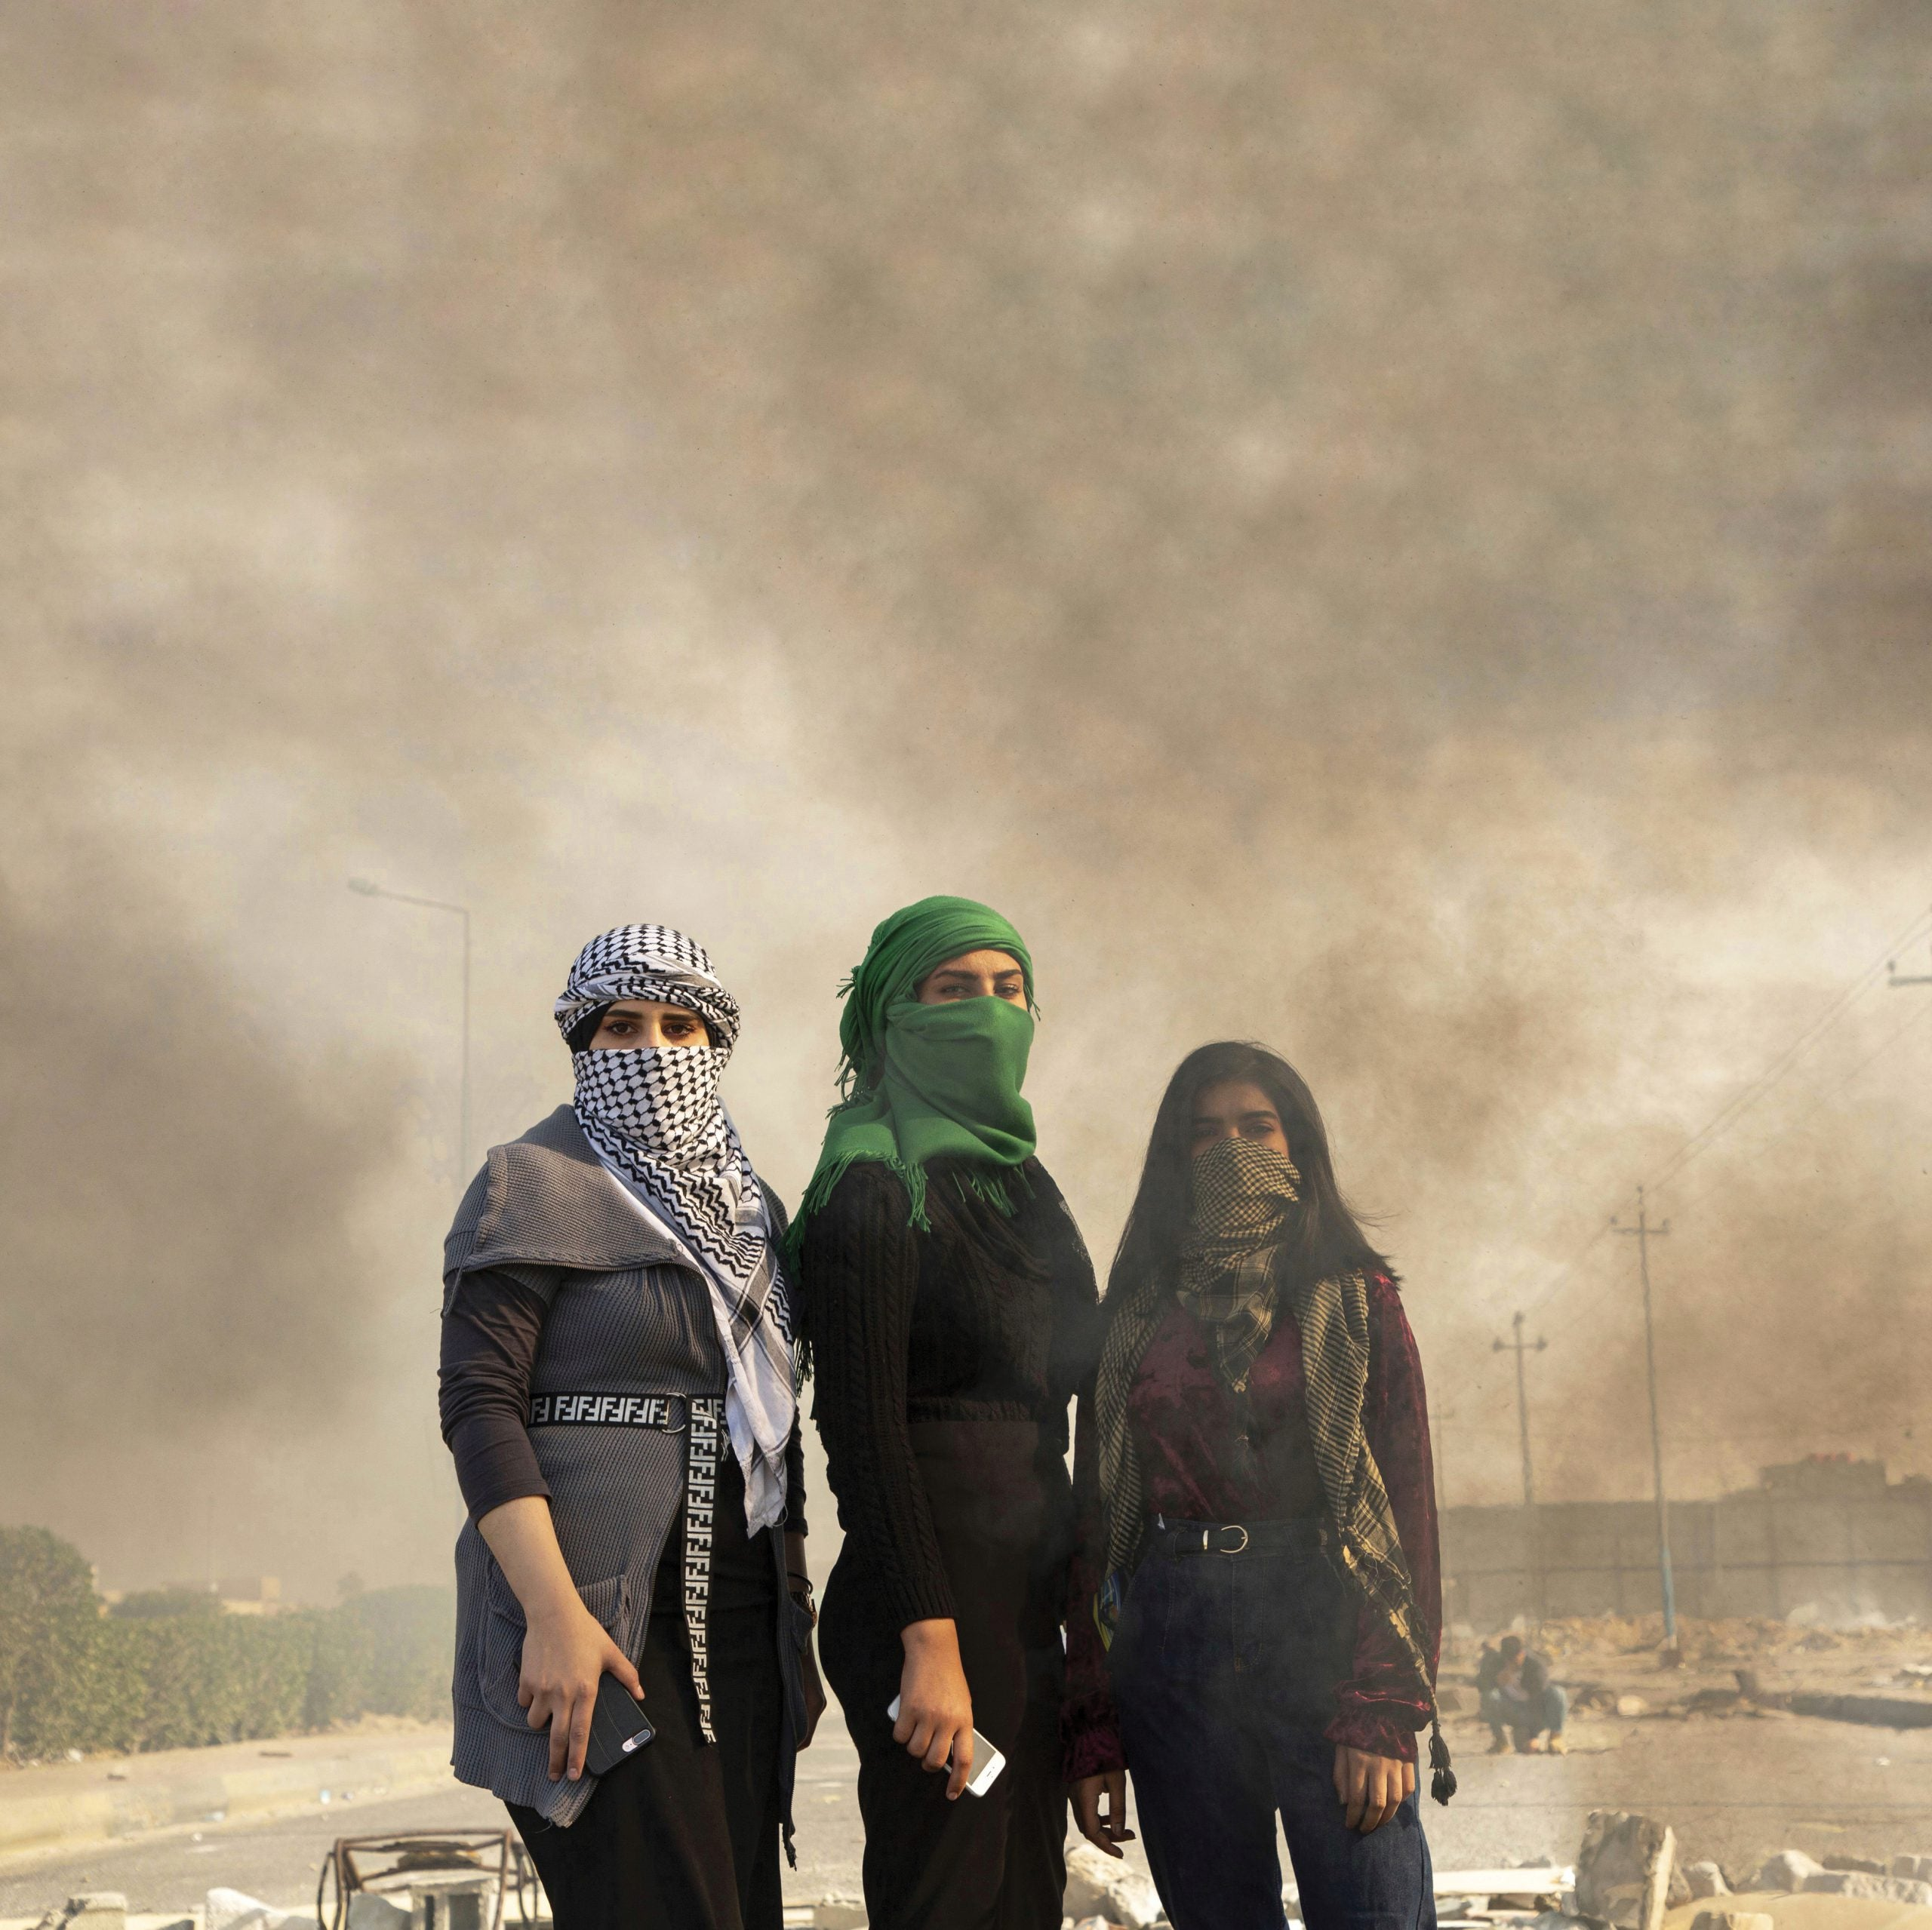 The young Iraqis fighting for a modern, independent nation